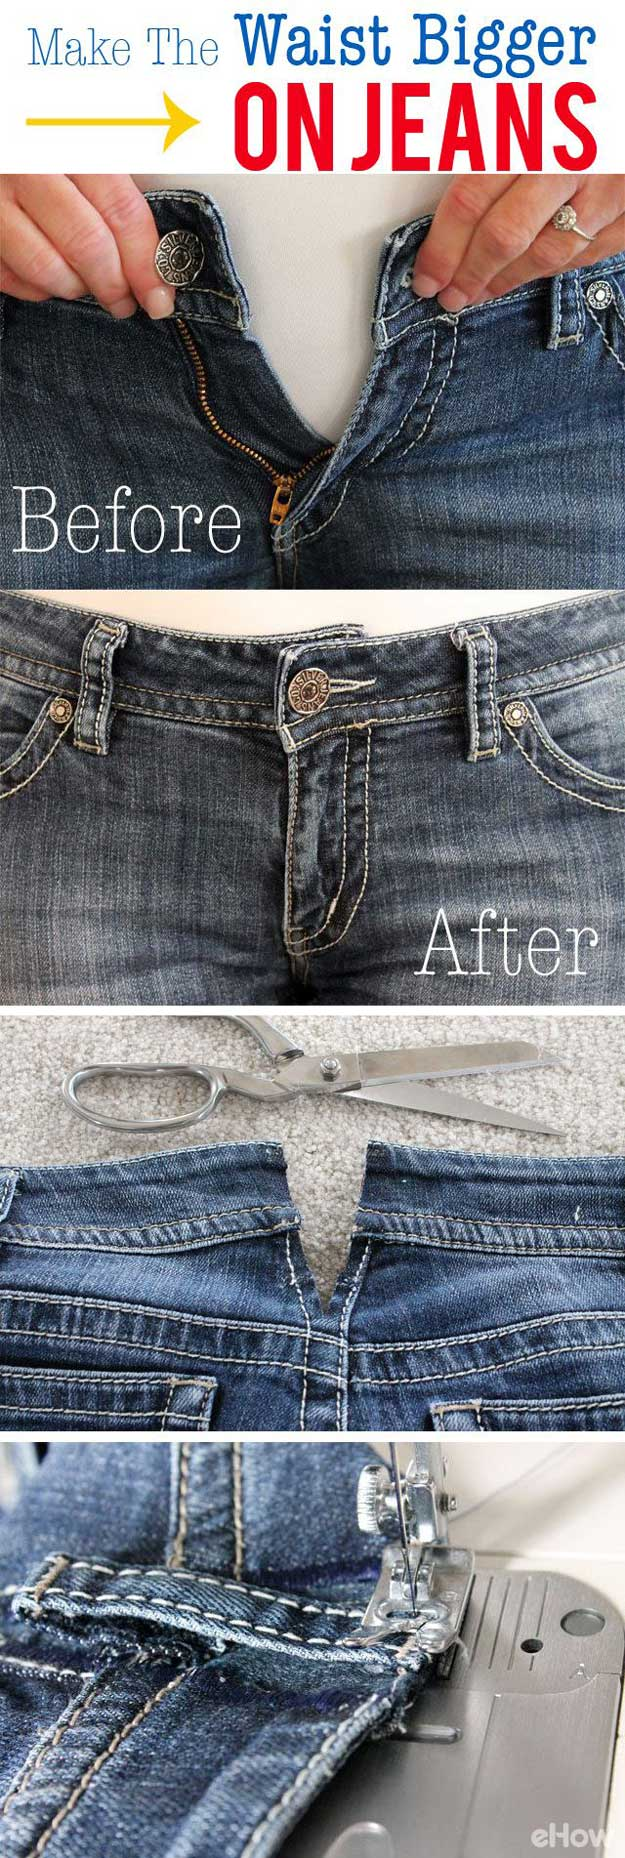 Sewing Hacks   Best Tips and Tricks for Sewing Patterns, Projects, Machines, Hand Sewn Items. Clever Ideas for Beginners and Even Experts   How To Make The Waist Bigger on Jeans